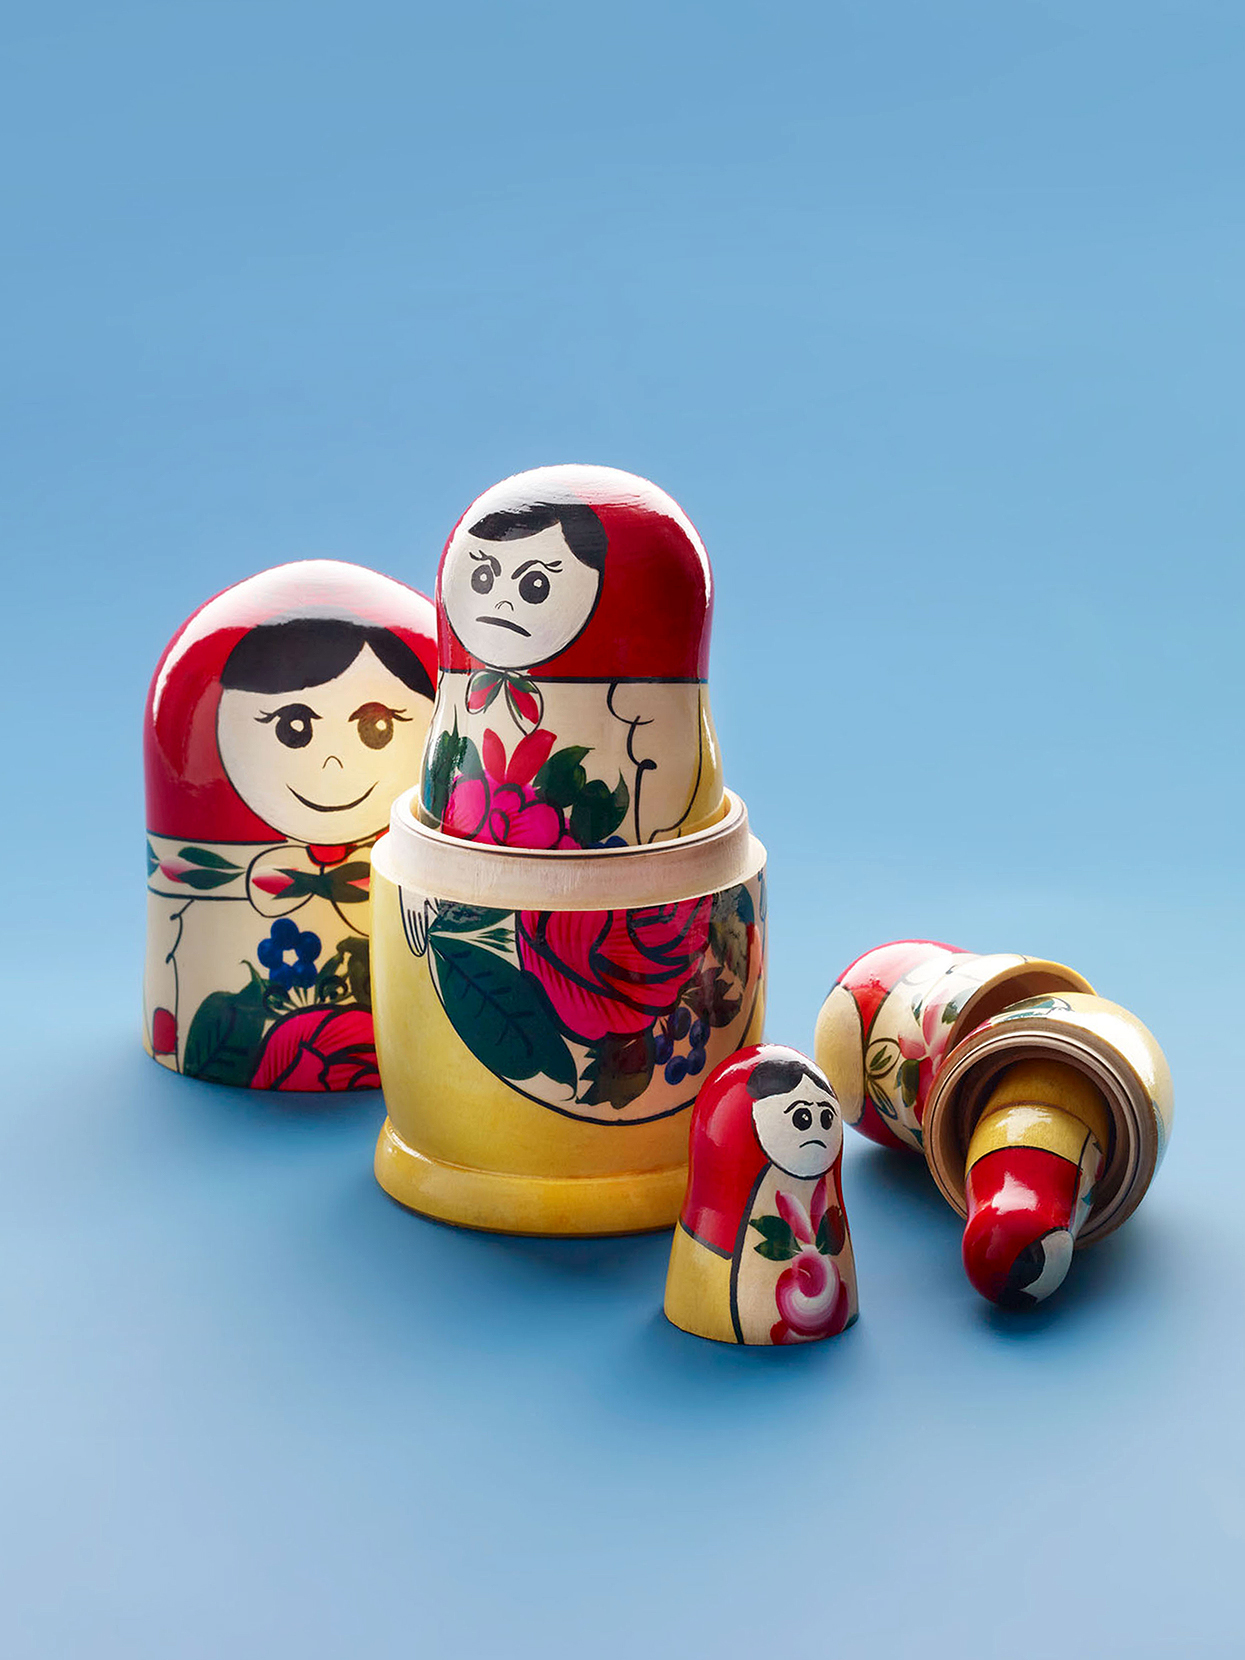 Russian nesting dolls with various facial expressions on blue